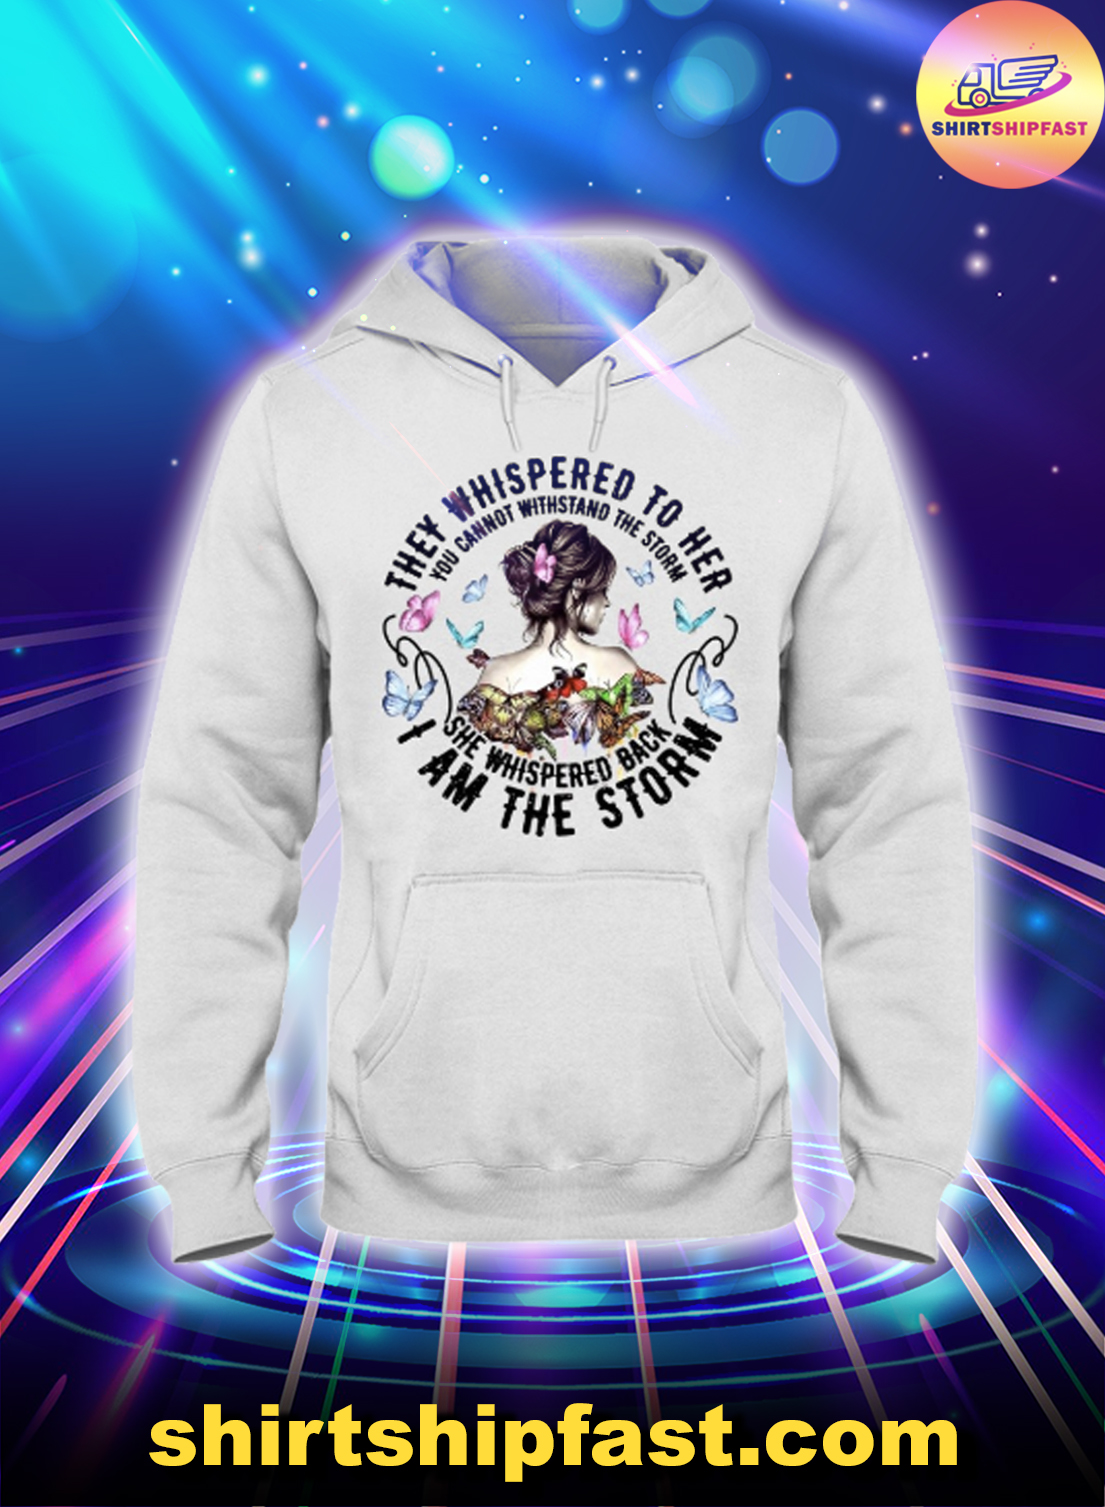 Butterfly They whispered to her I am the storm hoodie